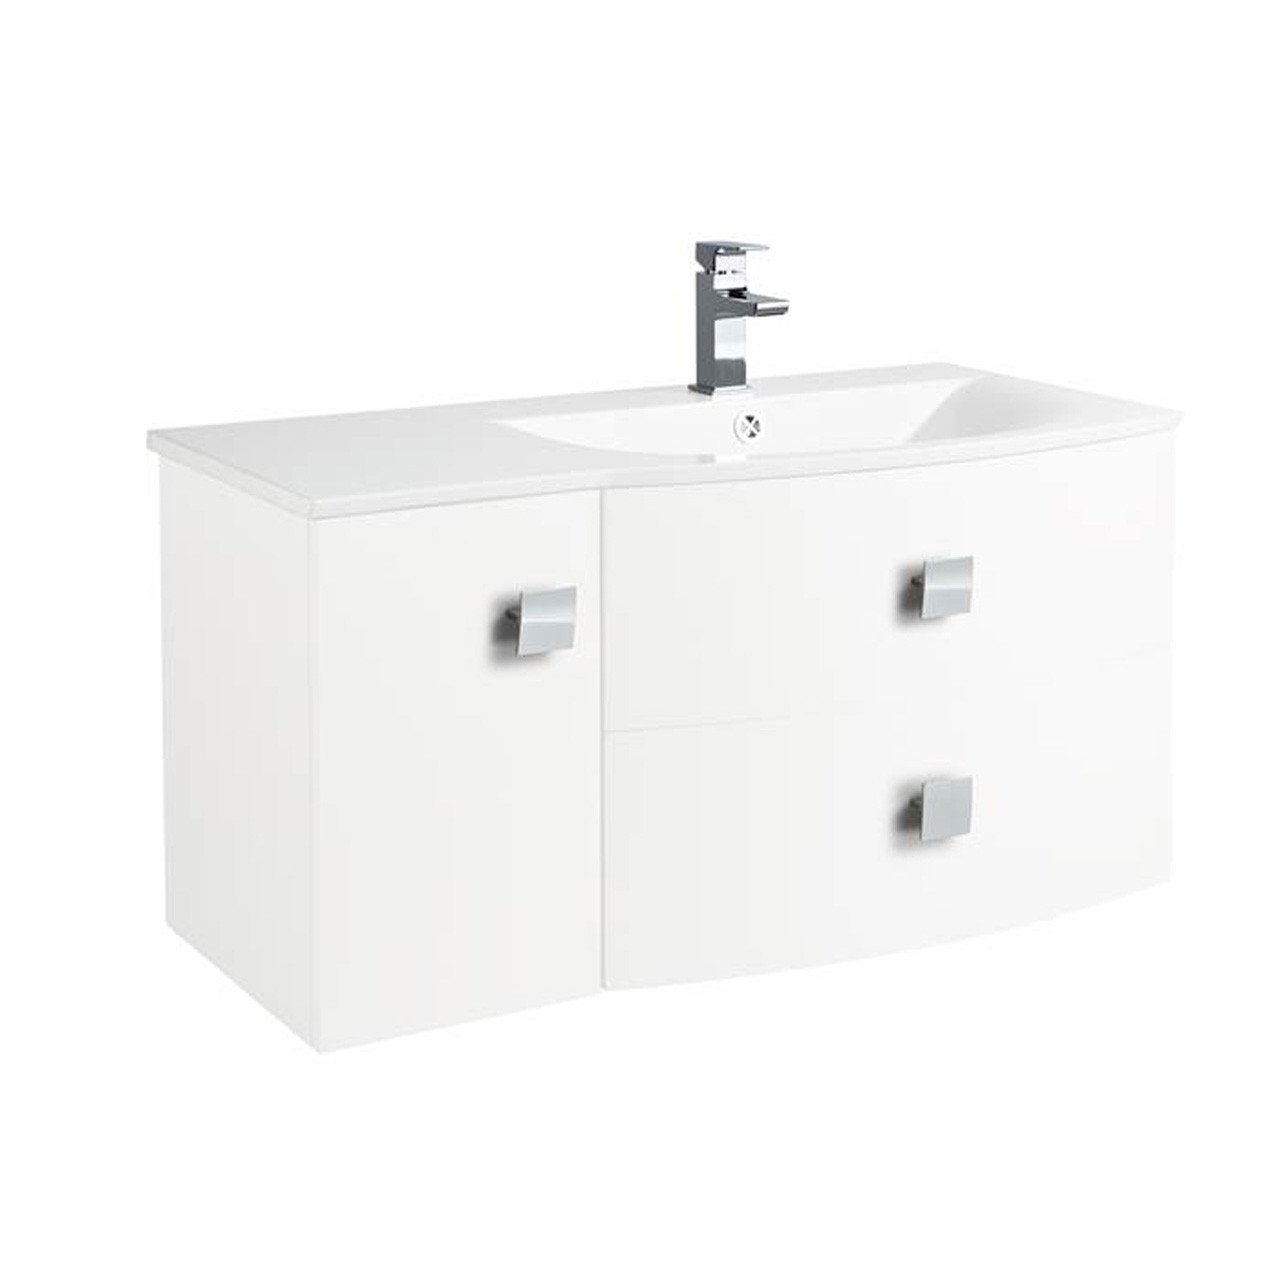 Hudson Reed Sarenna White Wall Hung 1000mm Cabinet & Right Hand Basin - FMB1223R & FMB0093R